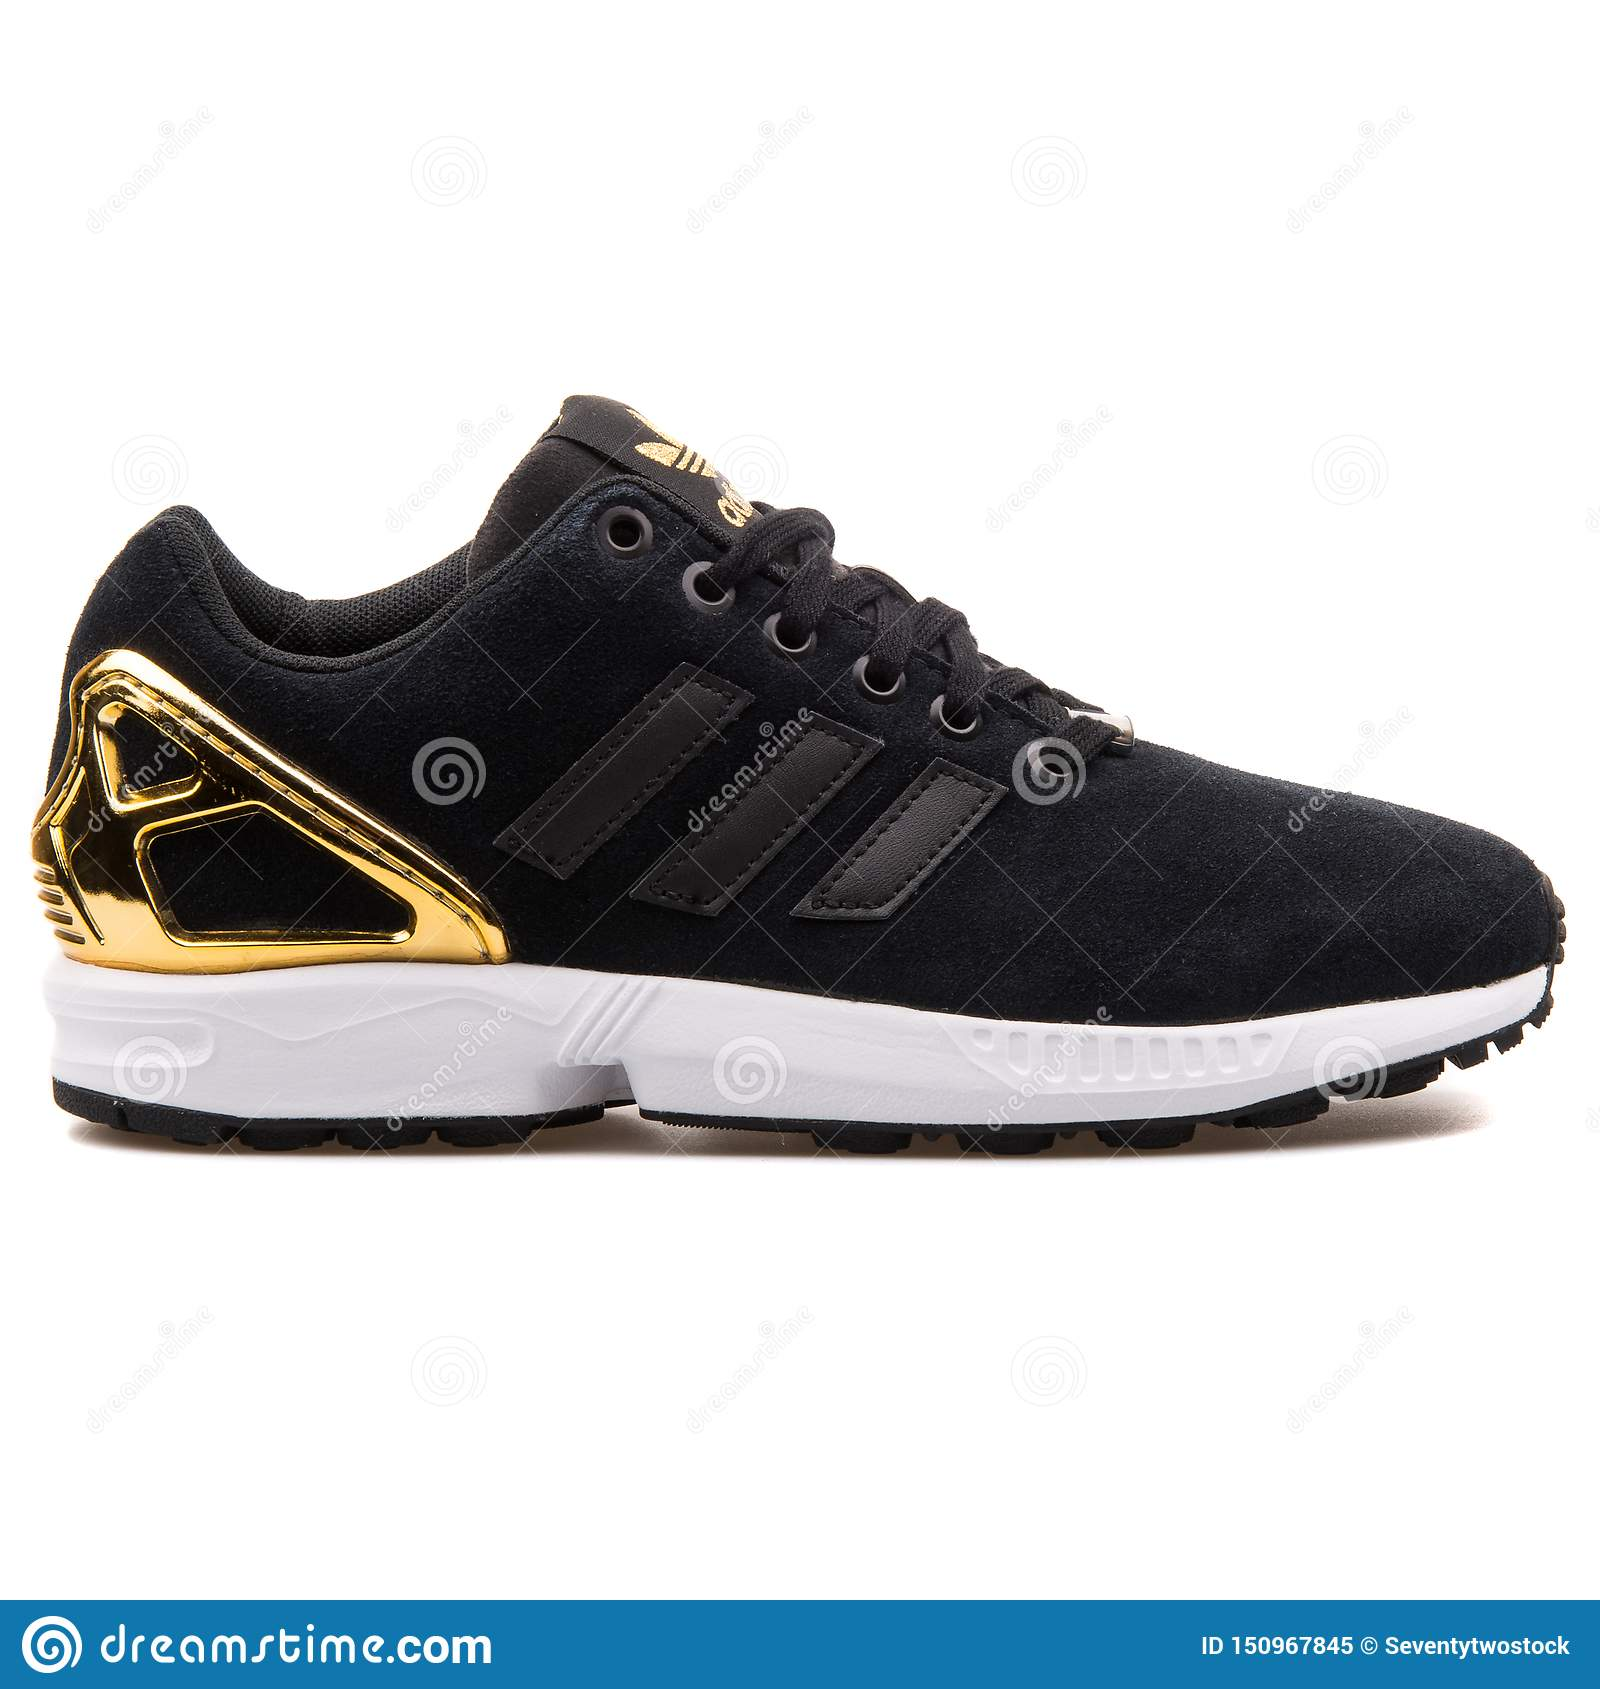 Adidas Zx Flux Black Gold WIY59 - AGBC